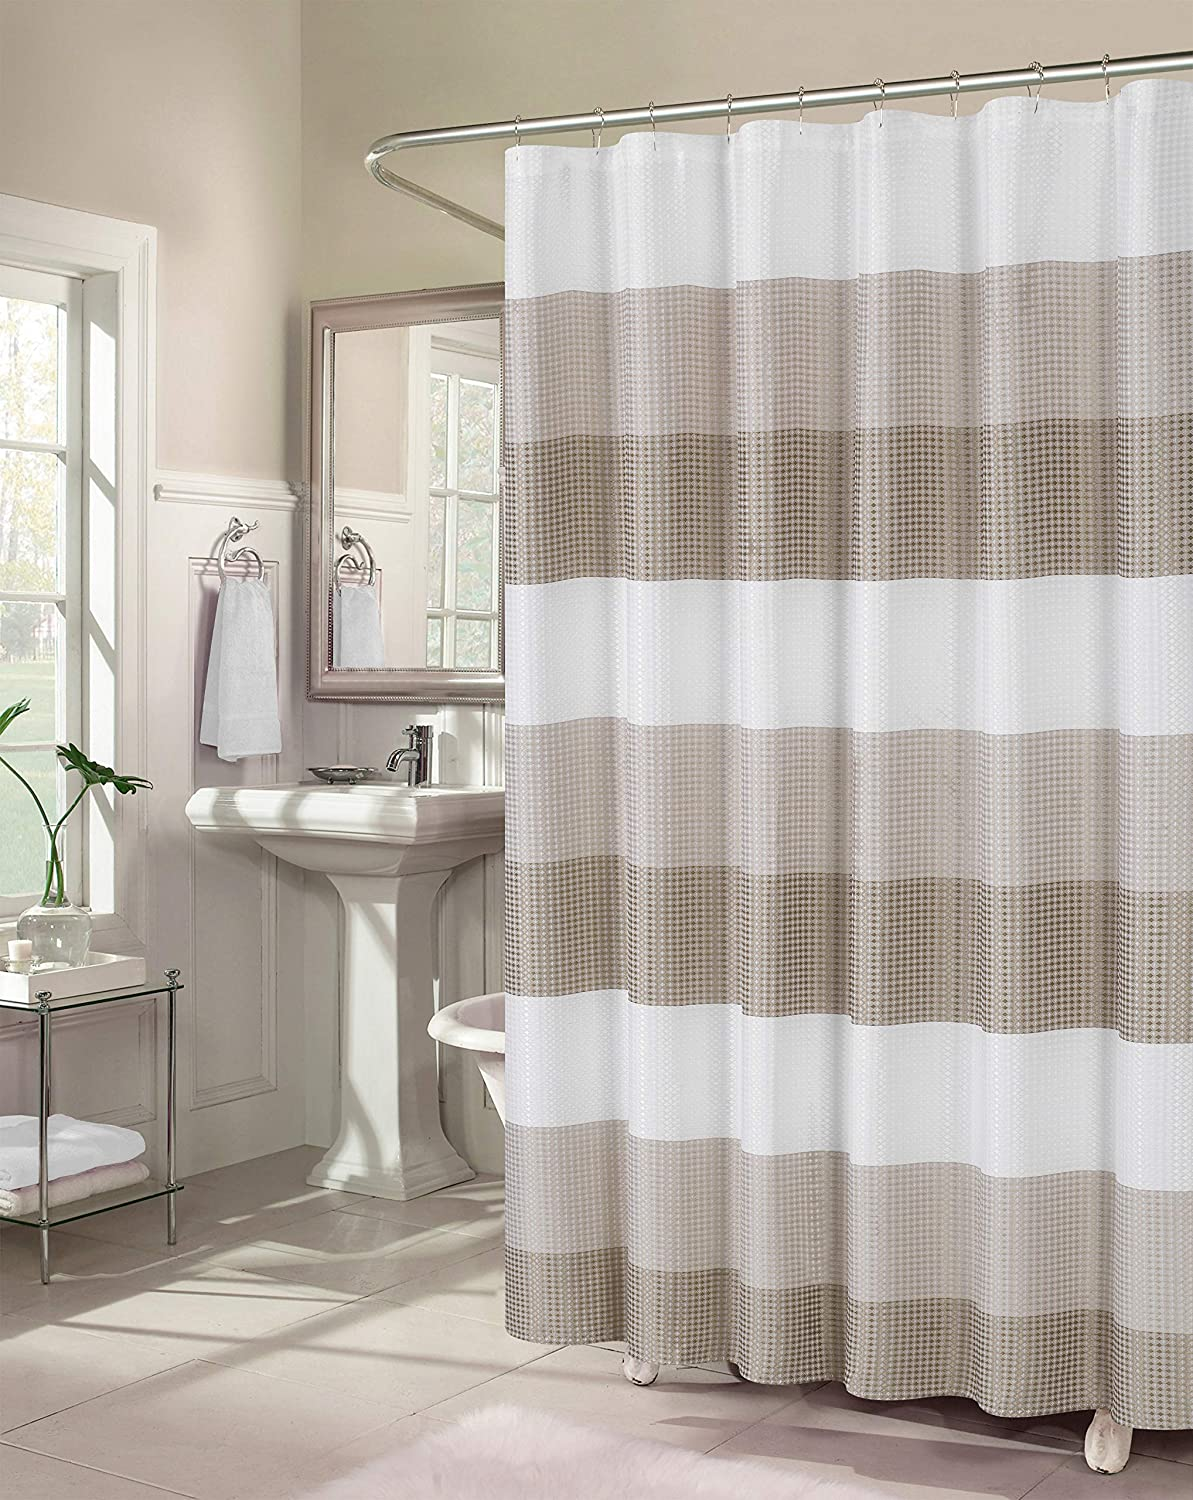 Dainty Home Waffle Weave Ombre Stripe Fabric Shower Curtain, 70 inch Wide x 72 inches Long, Natural Taupe